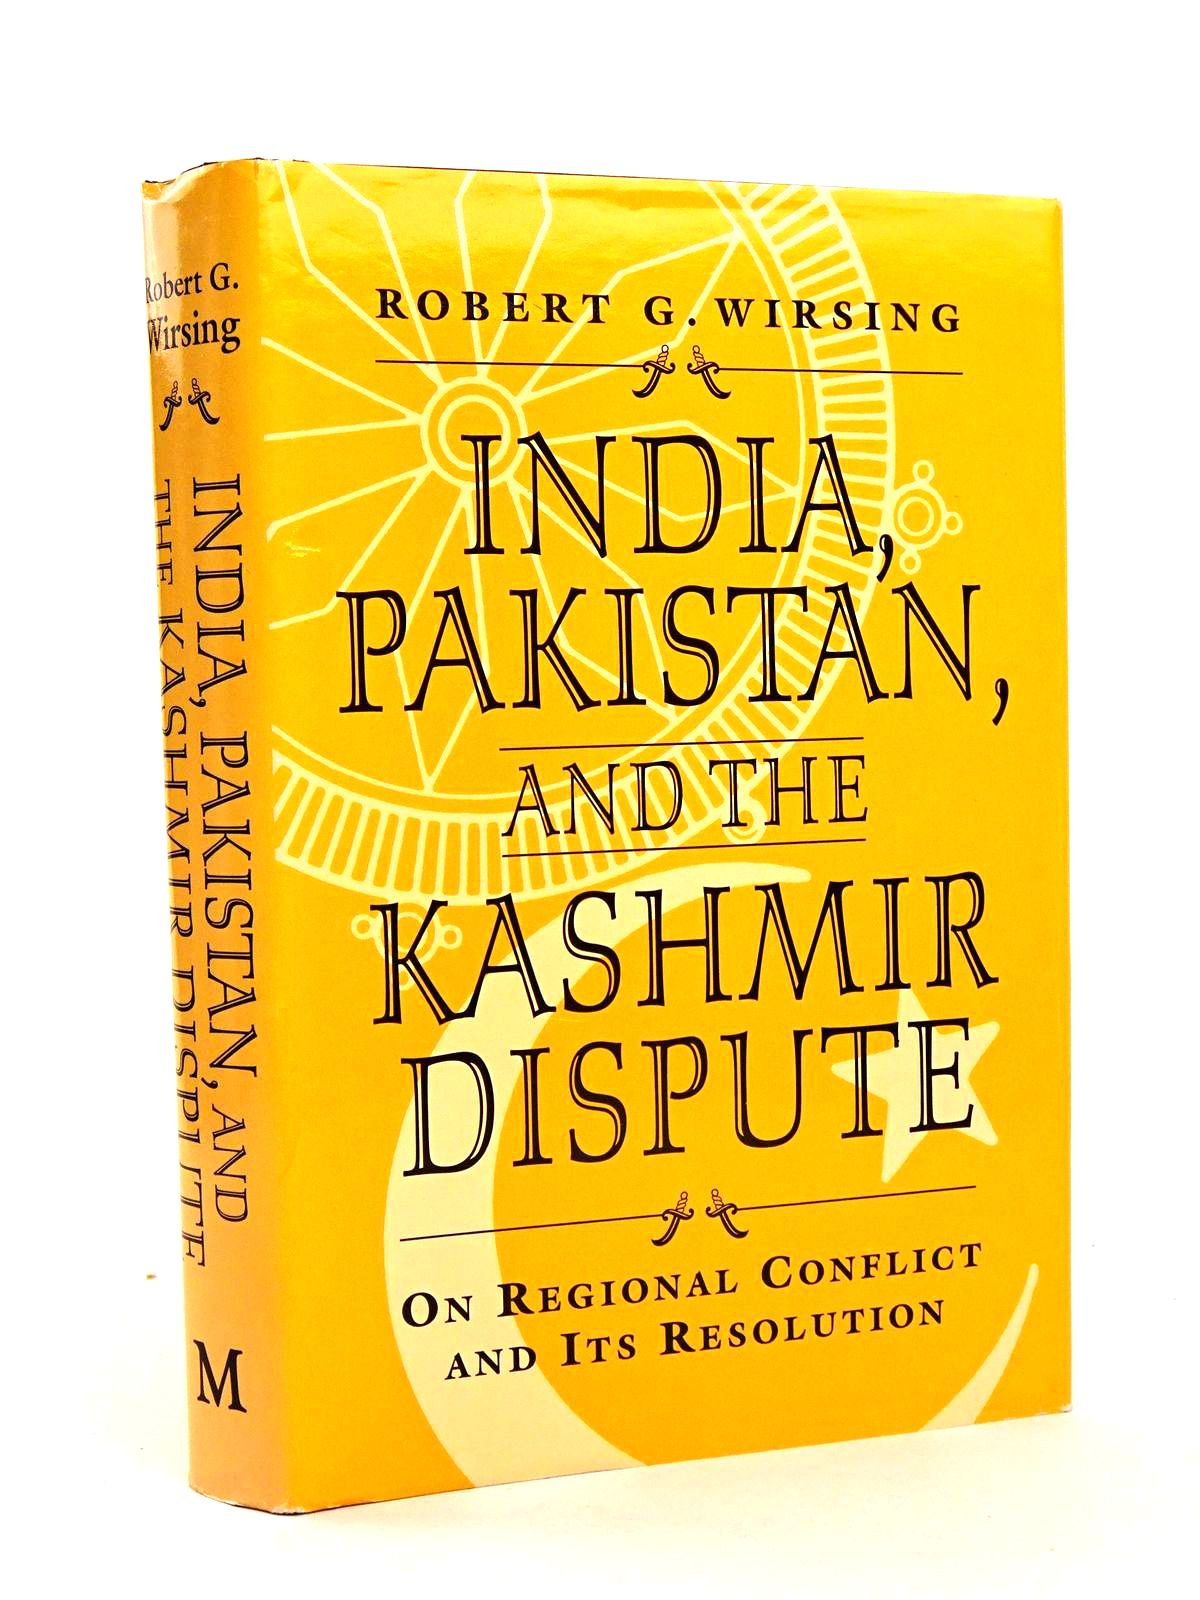 Photo of INDIA, PAKISTAN, AND THE KASHMIR DISPUTE ON REGIONAL CONFLICT AND ITS RESOLUTION written by Wirsing, Robert G. published by MacMillan (STOCK CODE: 1818628)  for sale by Stella & Rose's Books